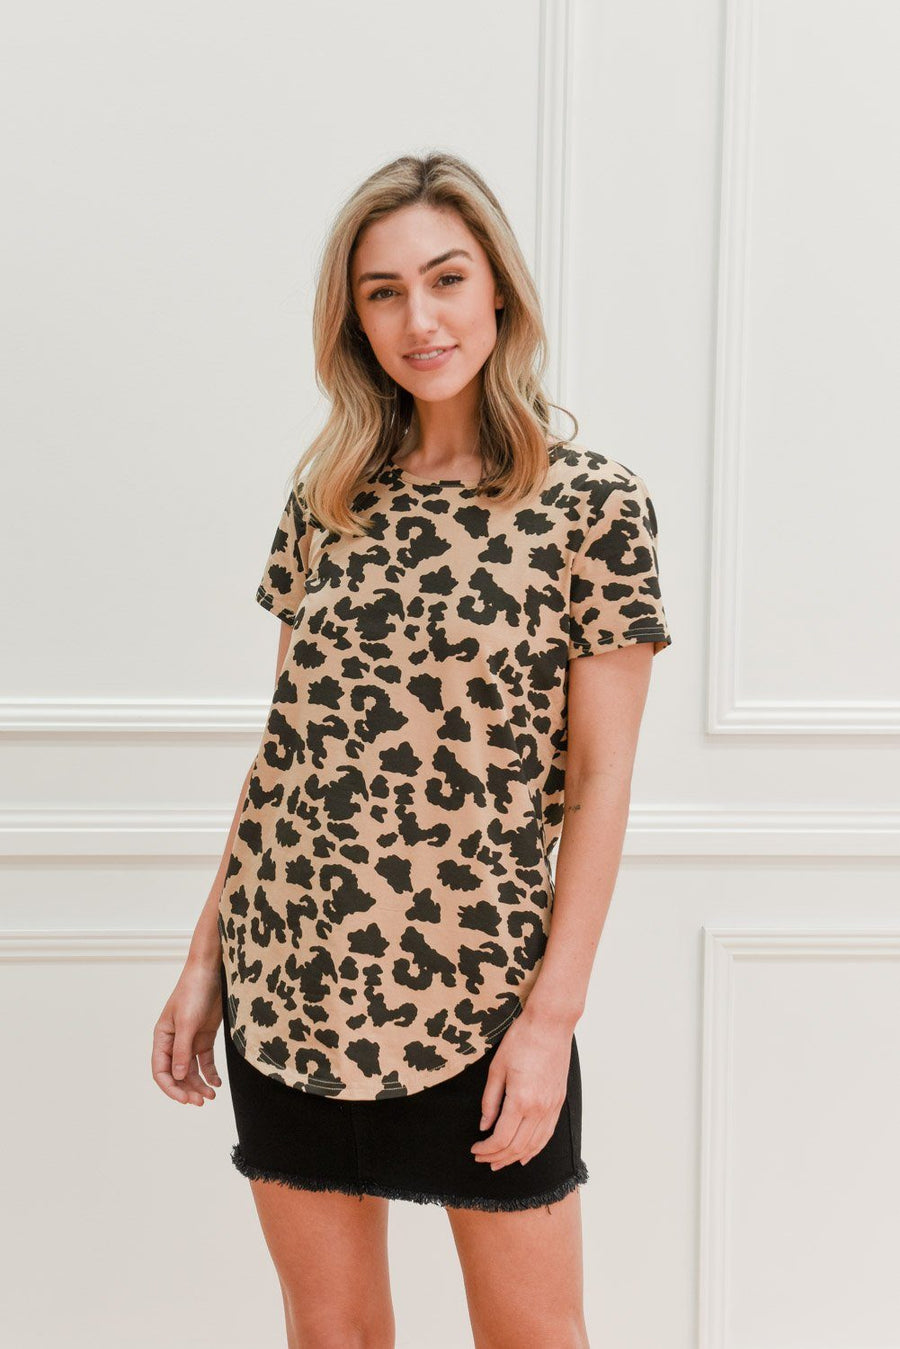 Georgia Tee | Leopard Tee Gray.Label